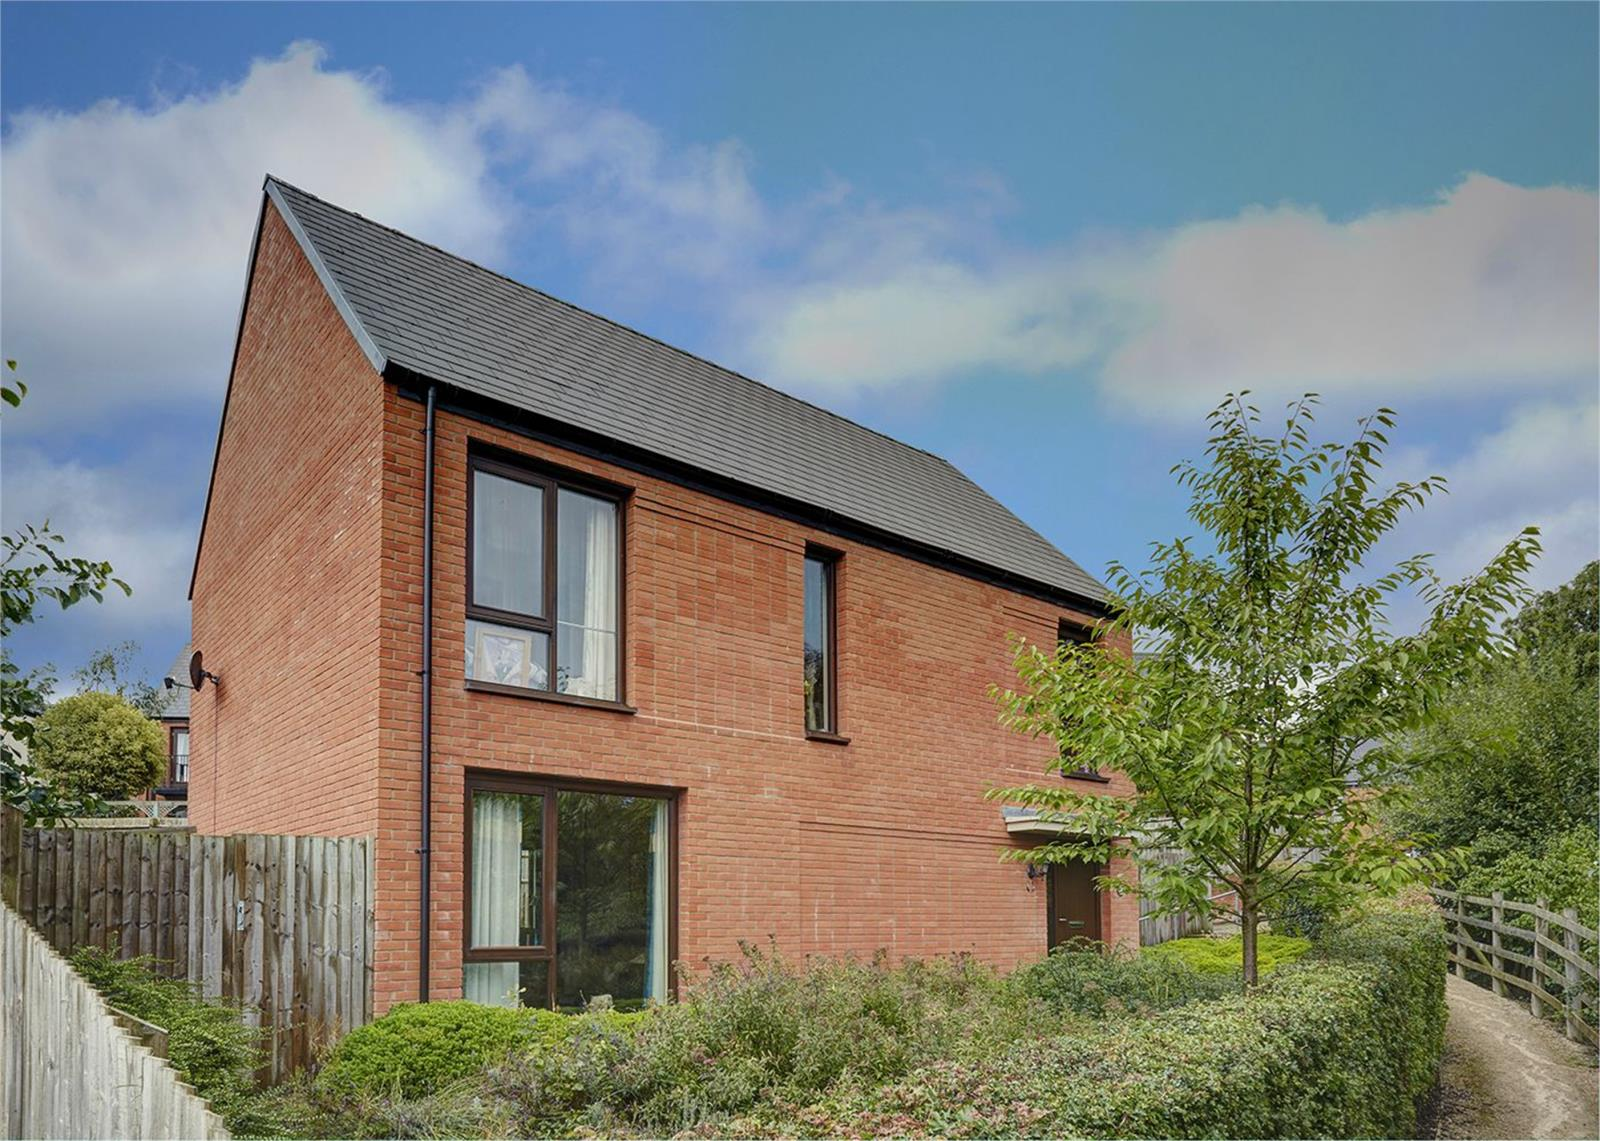 4 Bedrooms Detached House for sale in 33 Partridge Drive, Ketley, Telford, Shropshire, TF1